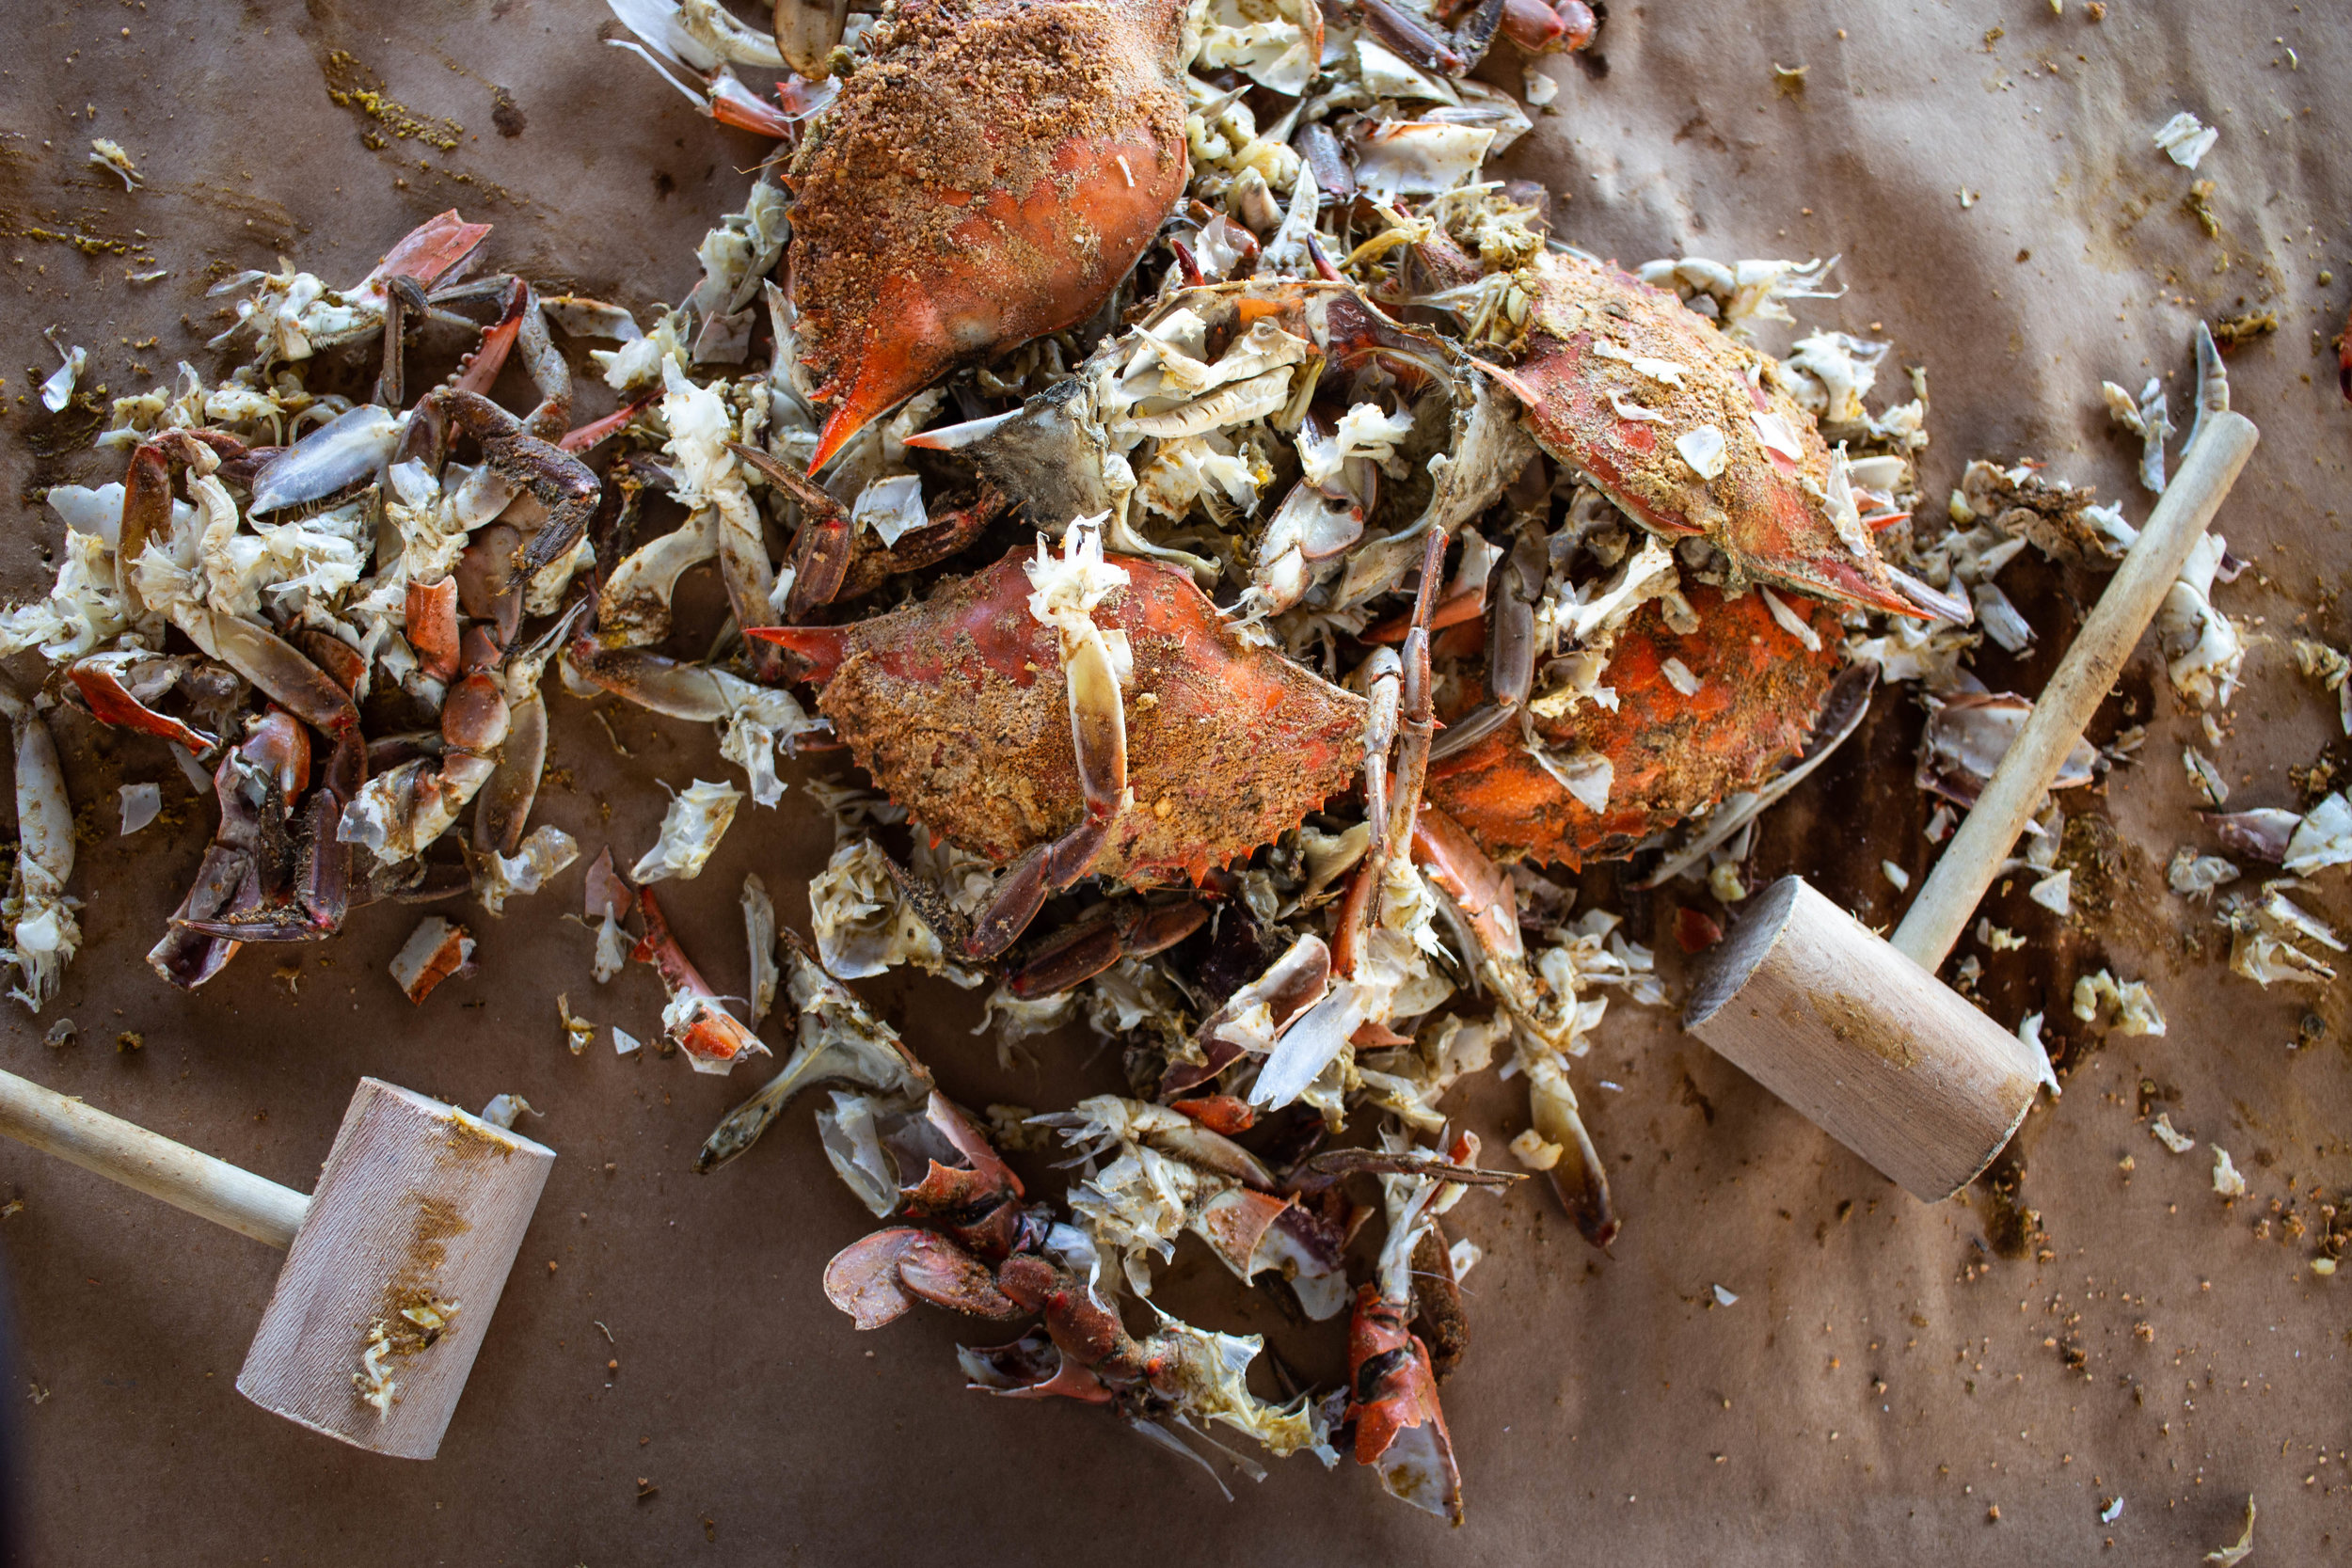 Crab Feast - 2019 07 31 (3 of 3).jpg